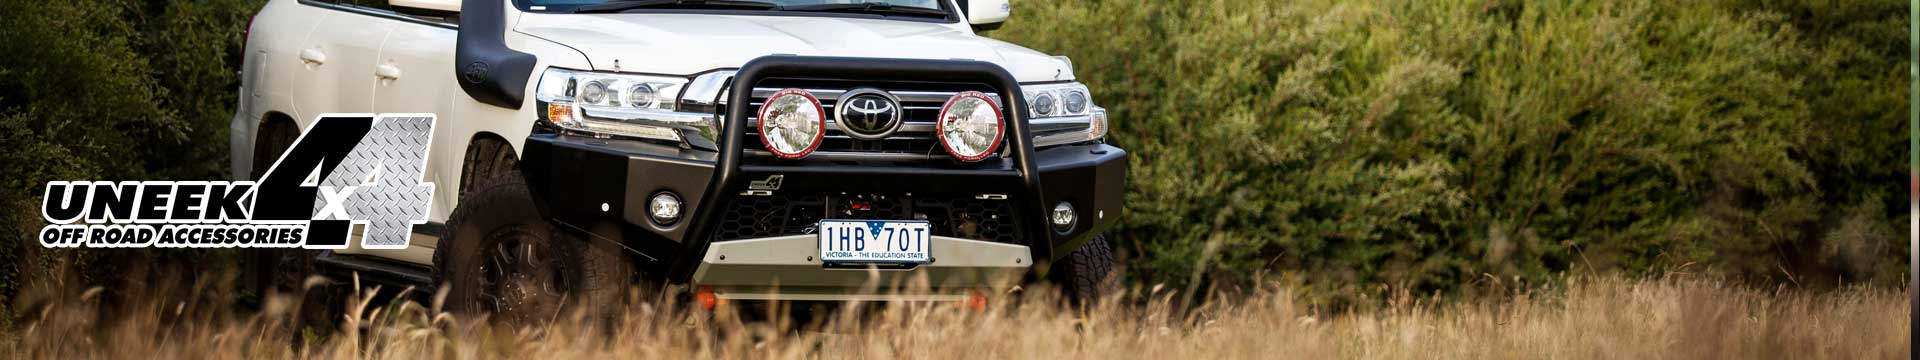 Uneek 4x4 Qld - All Uneek 4x4 bull bars available at Murchison Products